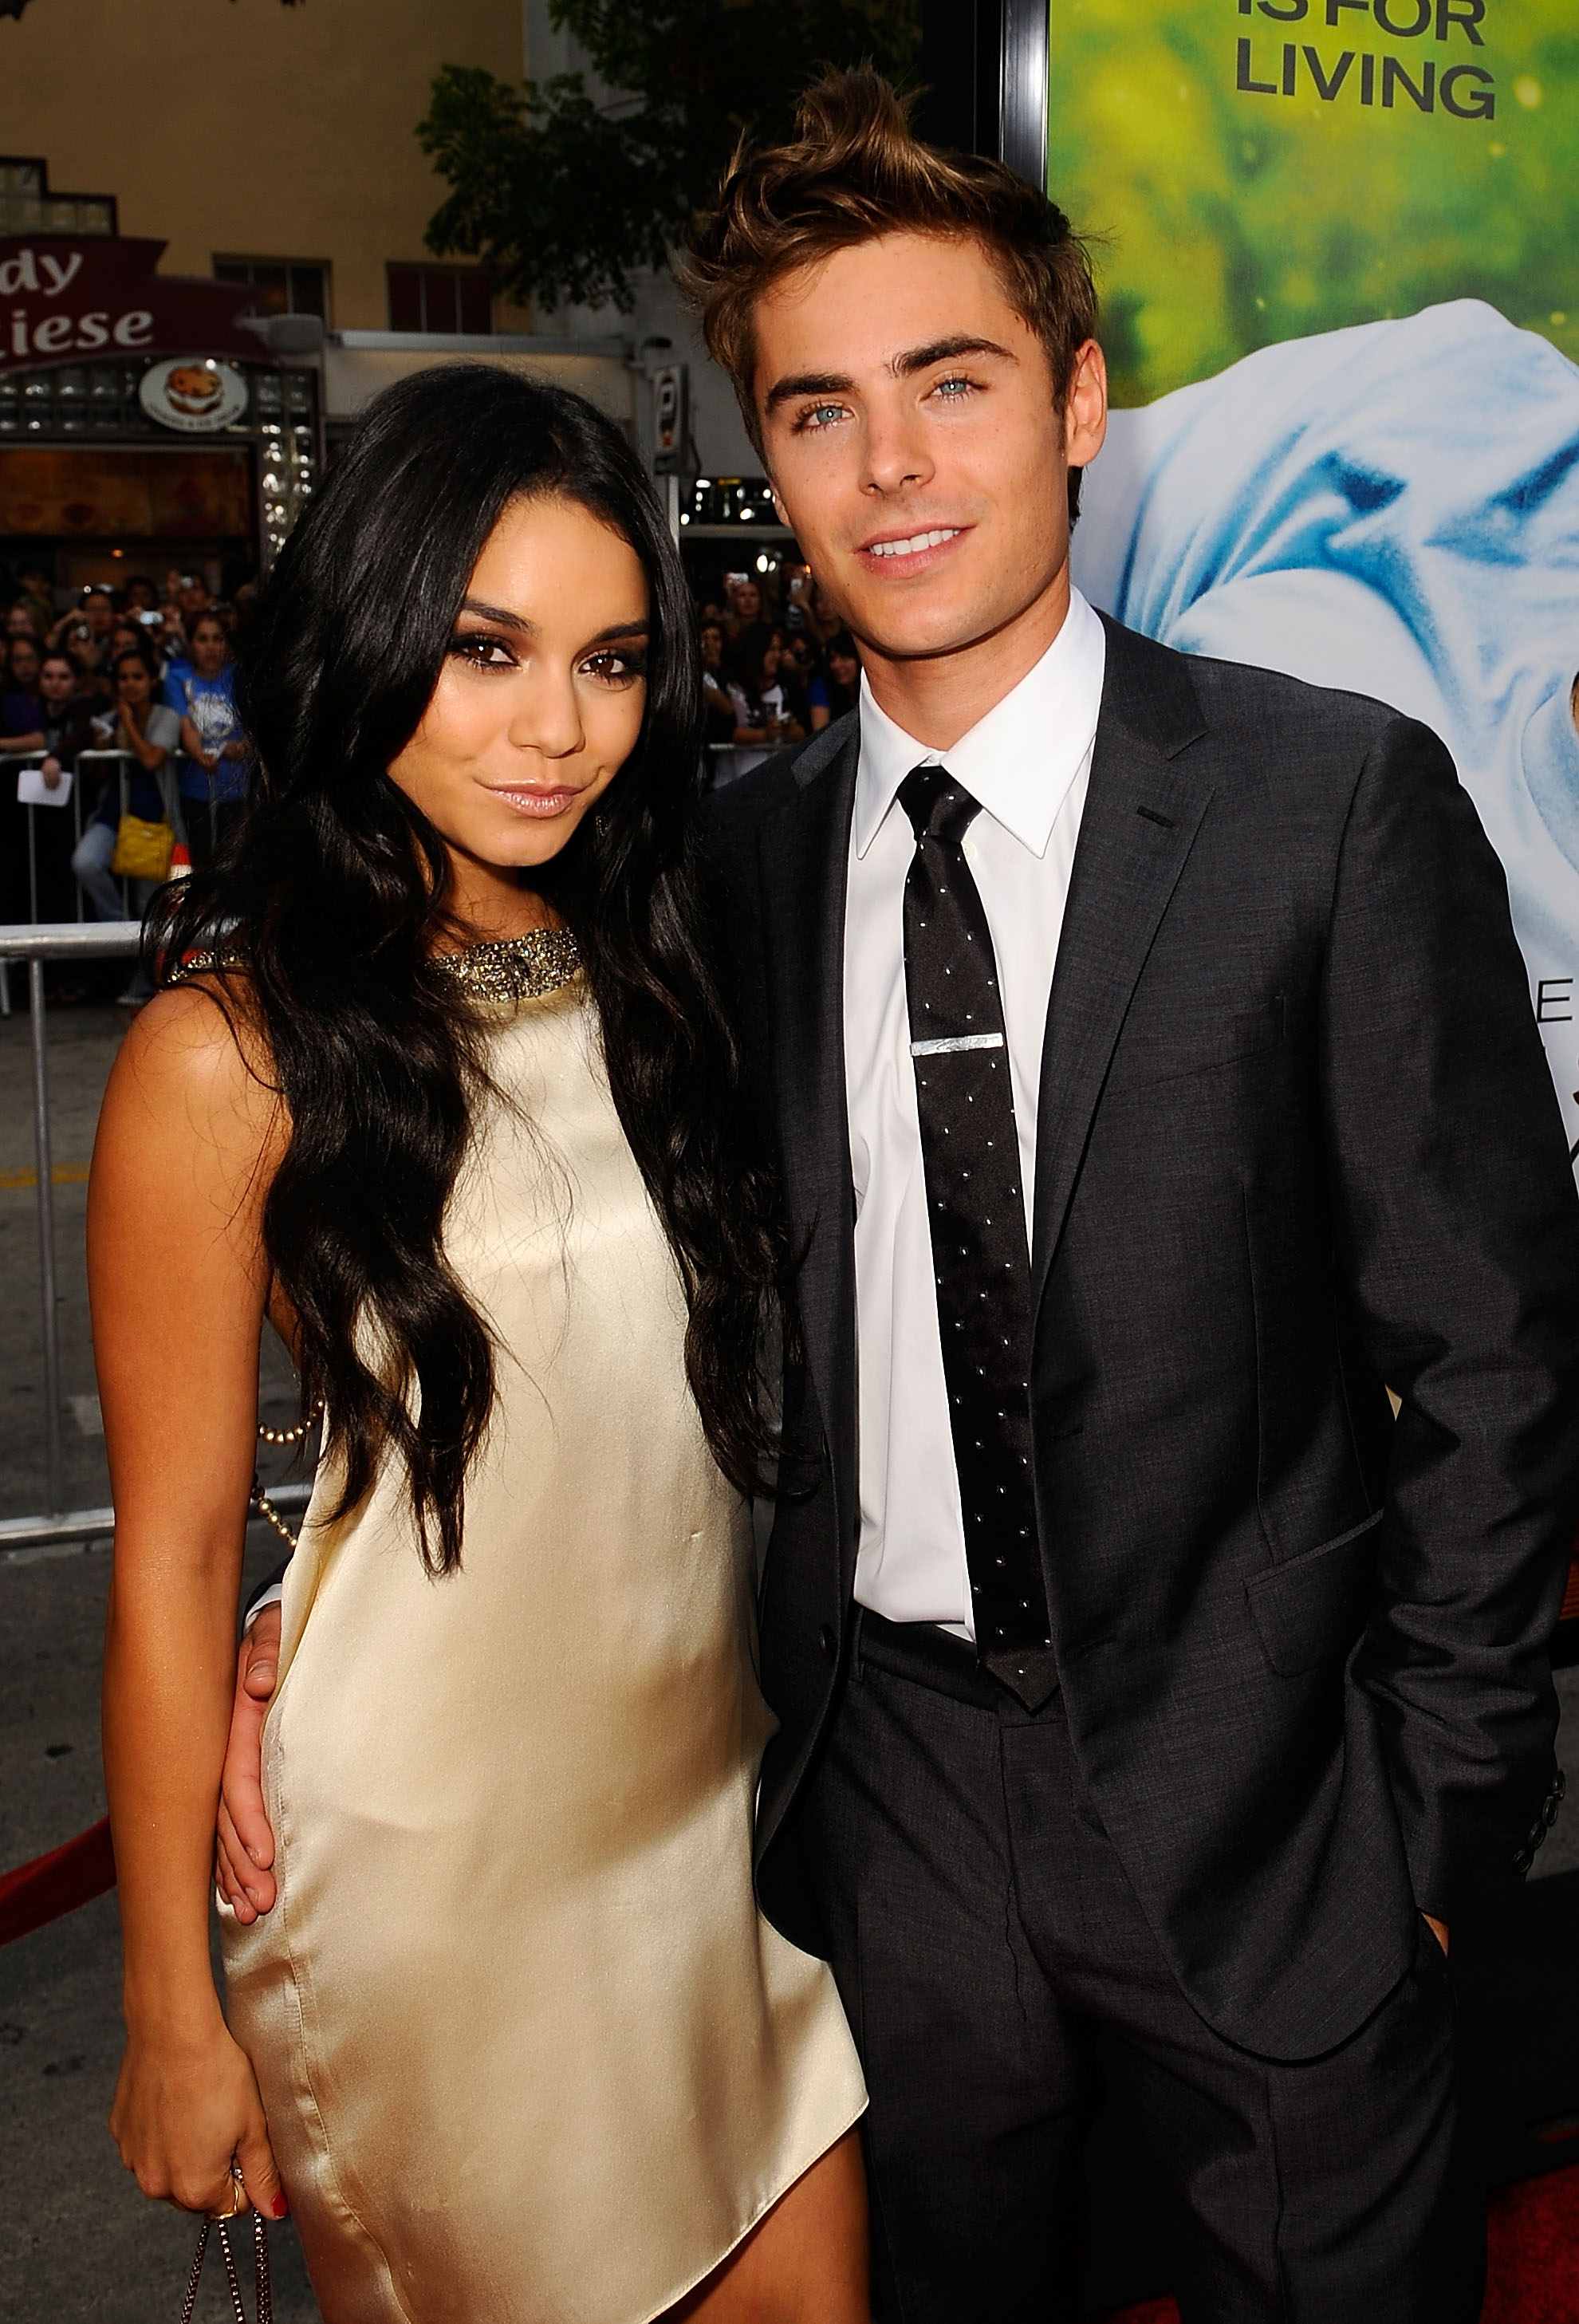 Zac efron and vanessa hudgens still hookup 2018